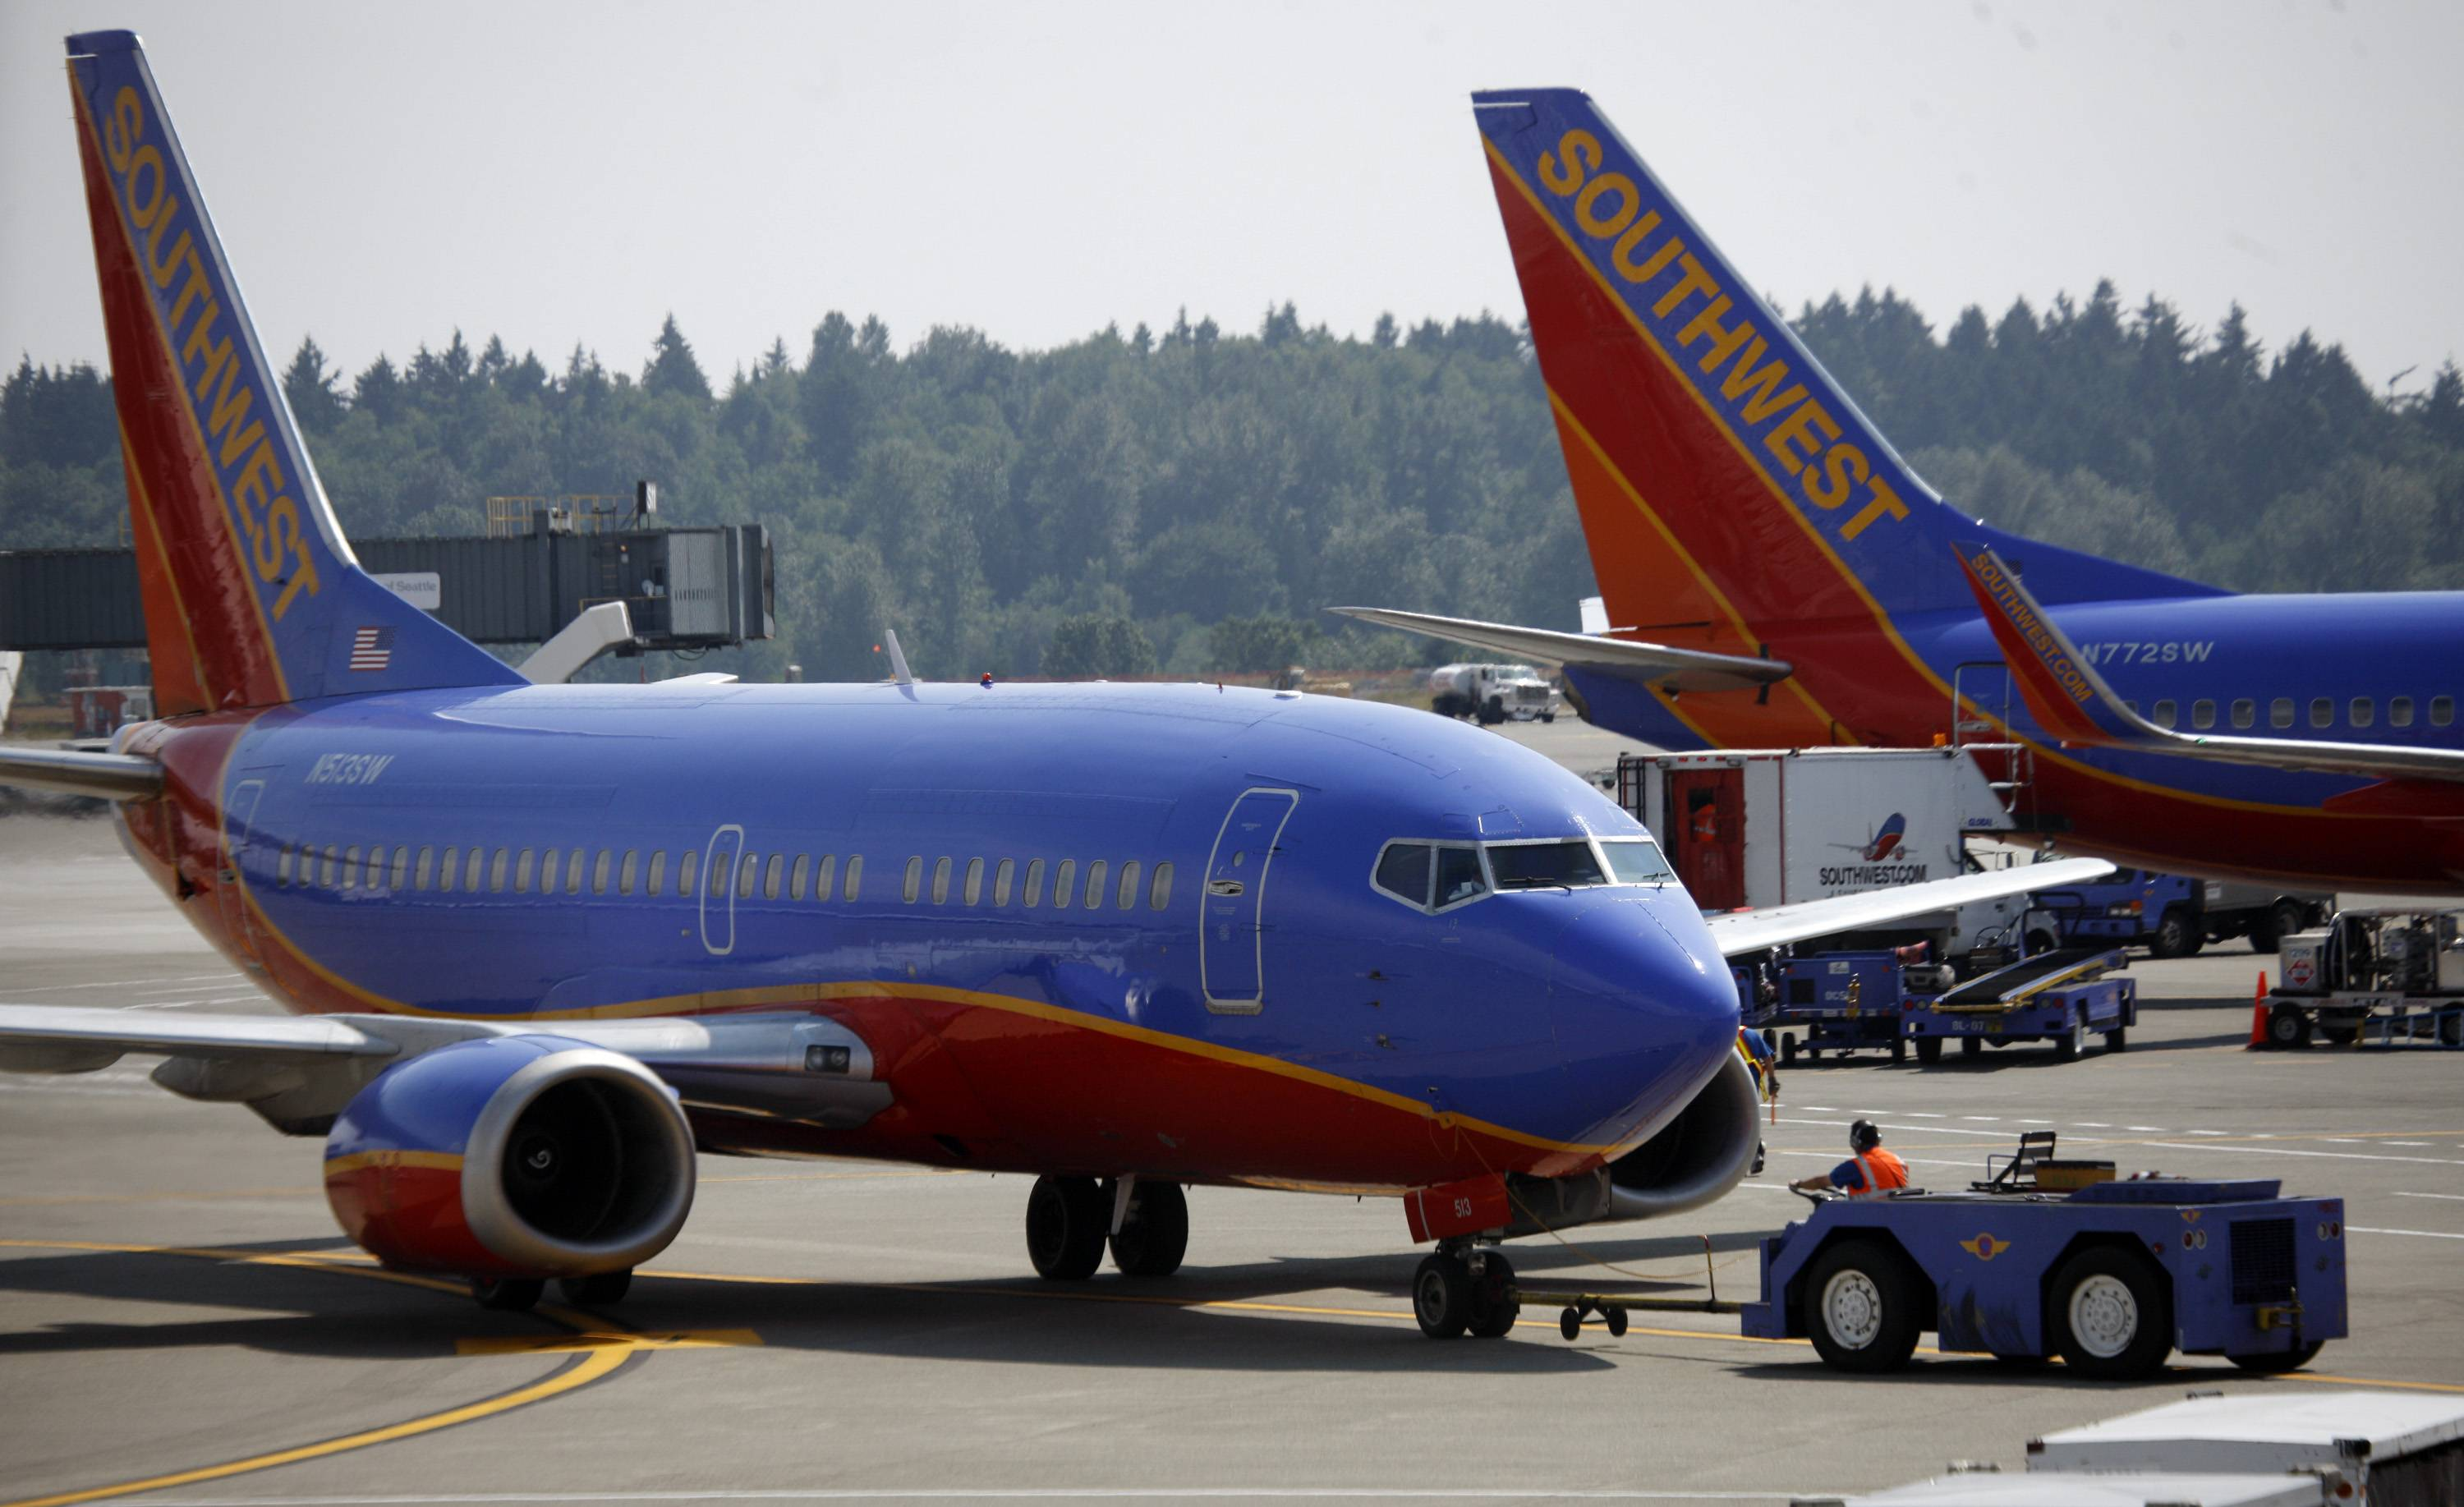 Southwest Airlines is being fined $200,000 for advertising a fare sale too good to be true. The U.S. Department of Transportation said Thursday that in TV ads last October the airline promised flights from Atlanta to New York, Chicago and Los Angeles for just $59 — but didn't make any seats available at that price.